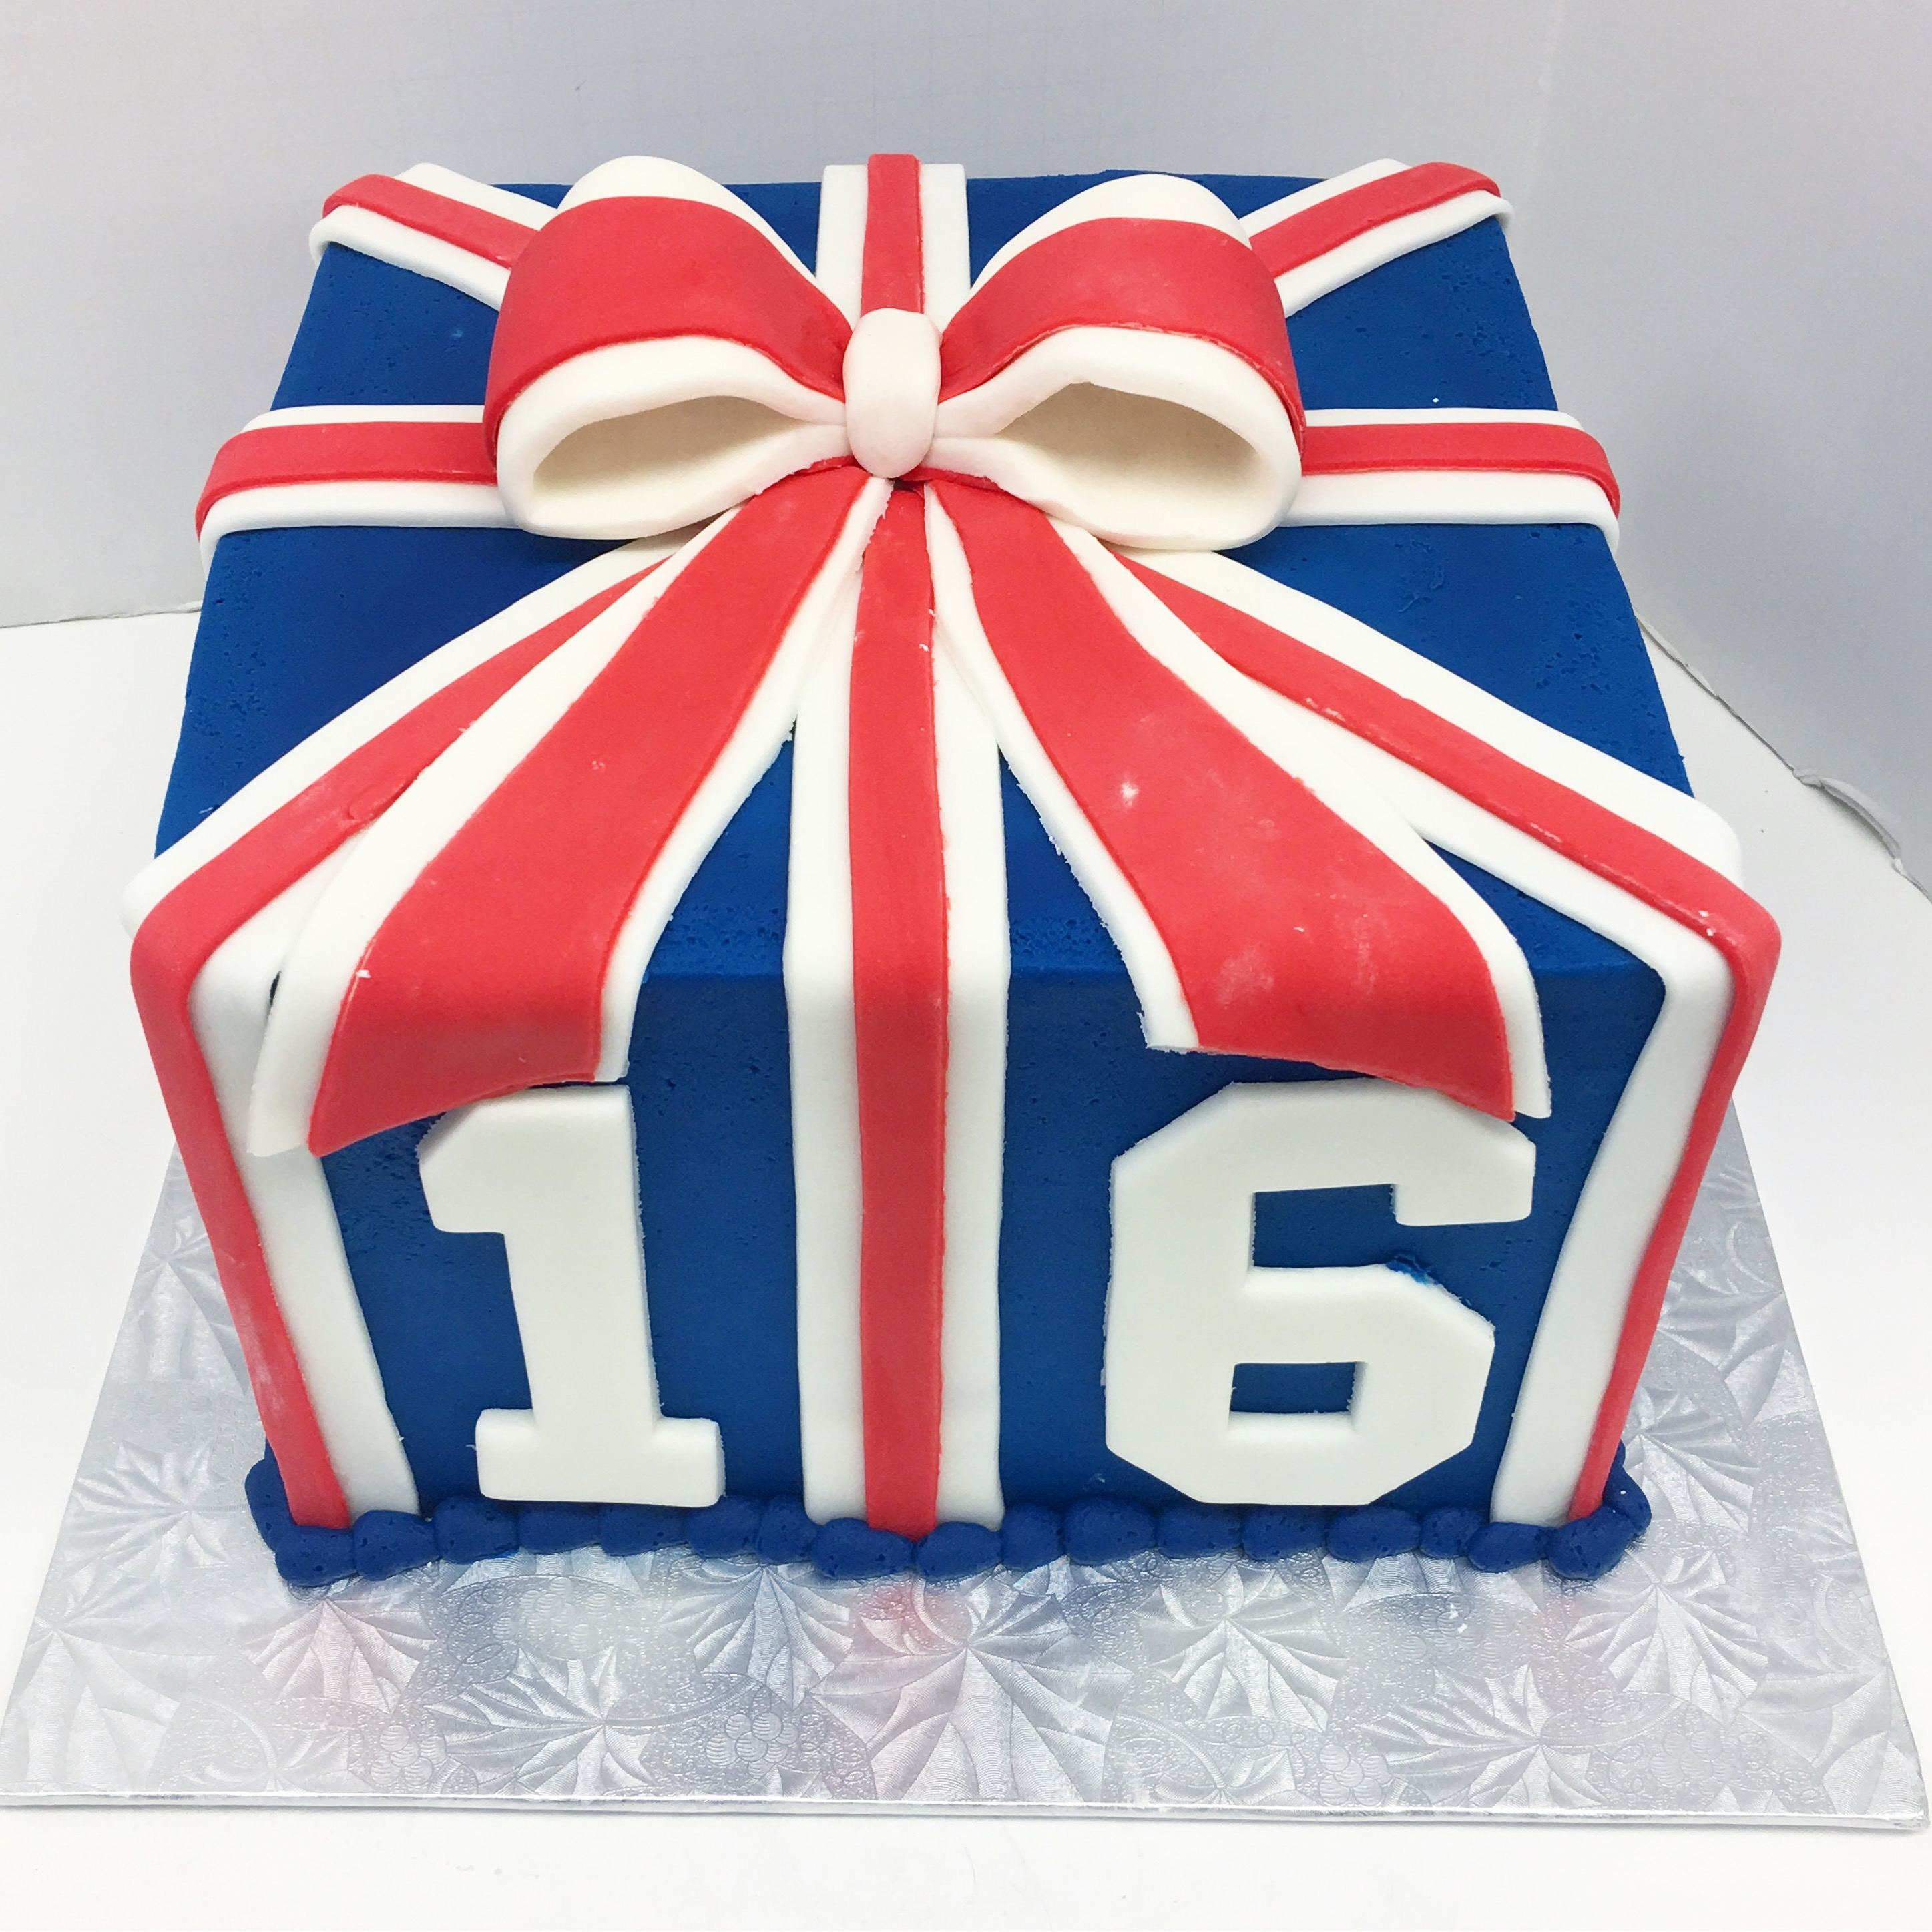 British Birthday Les Amis Bake Shoppe